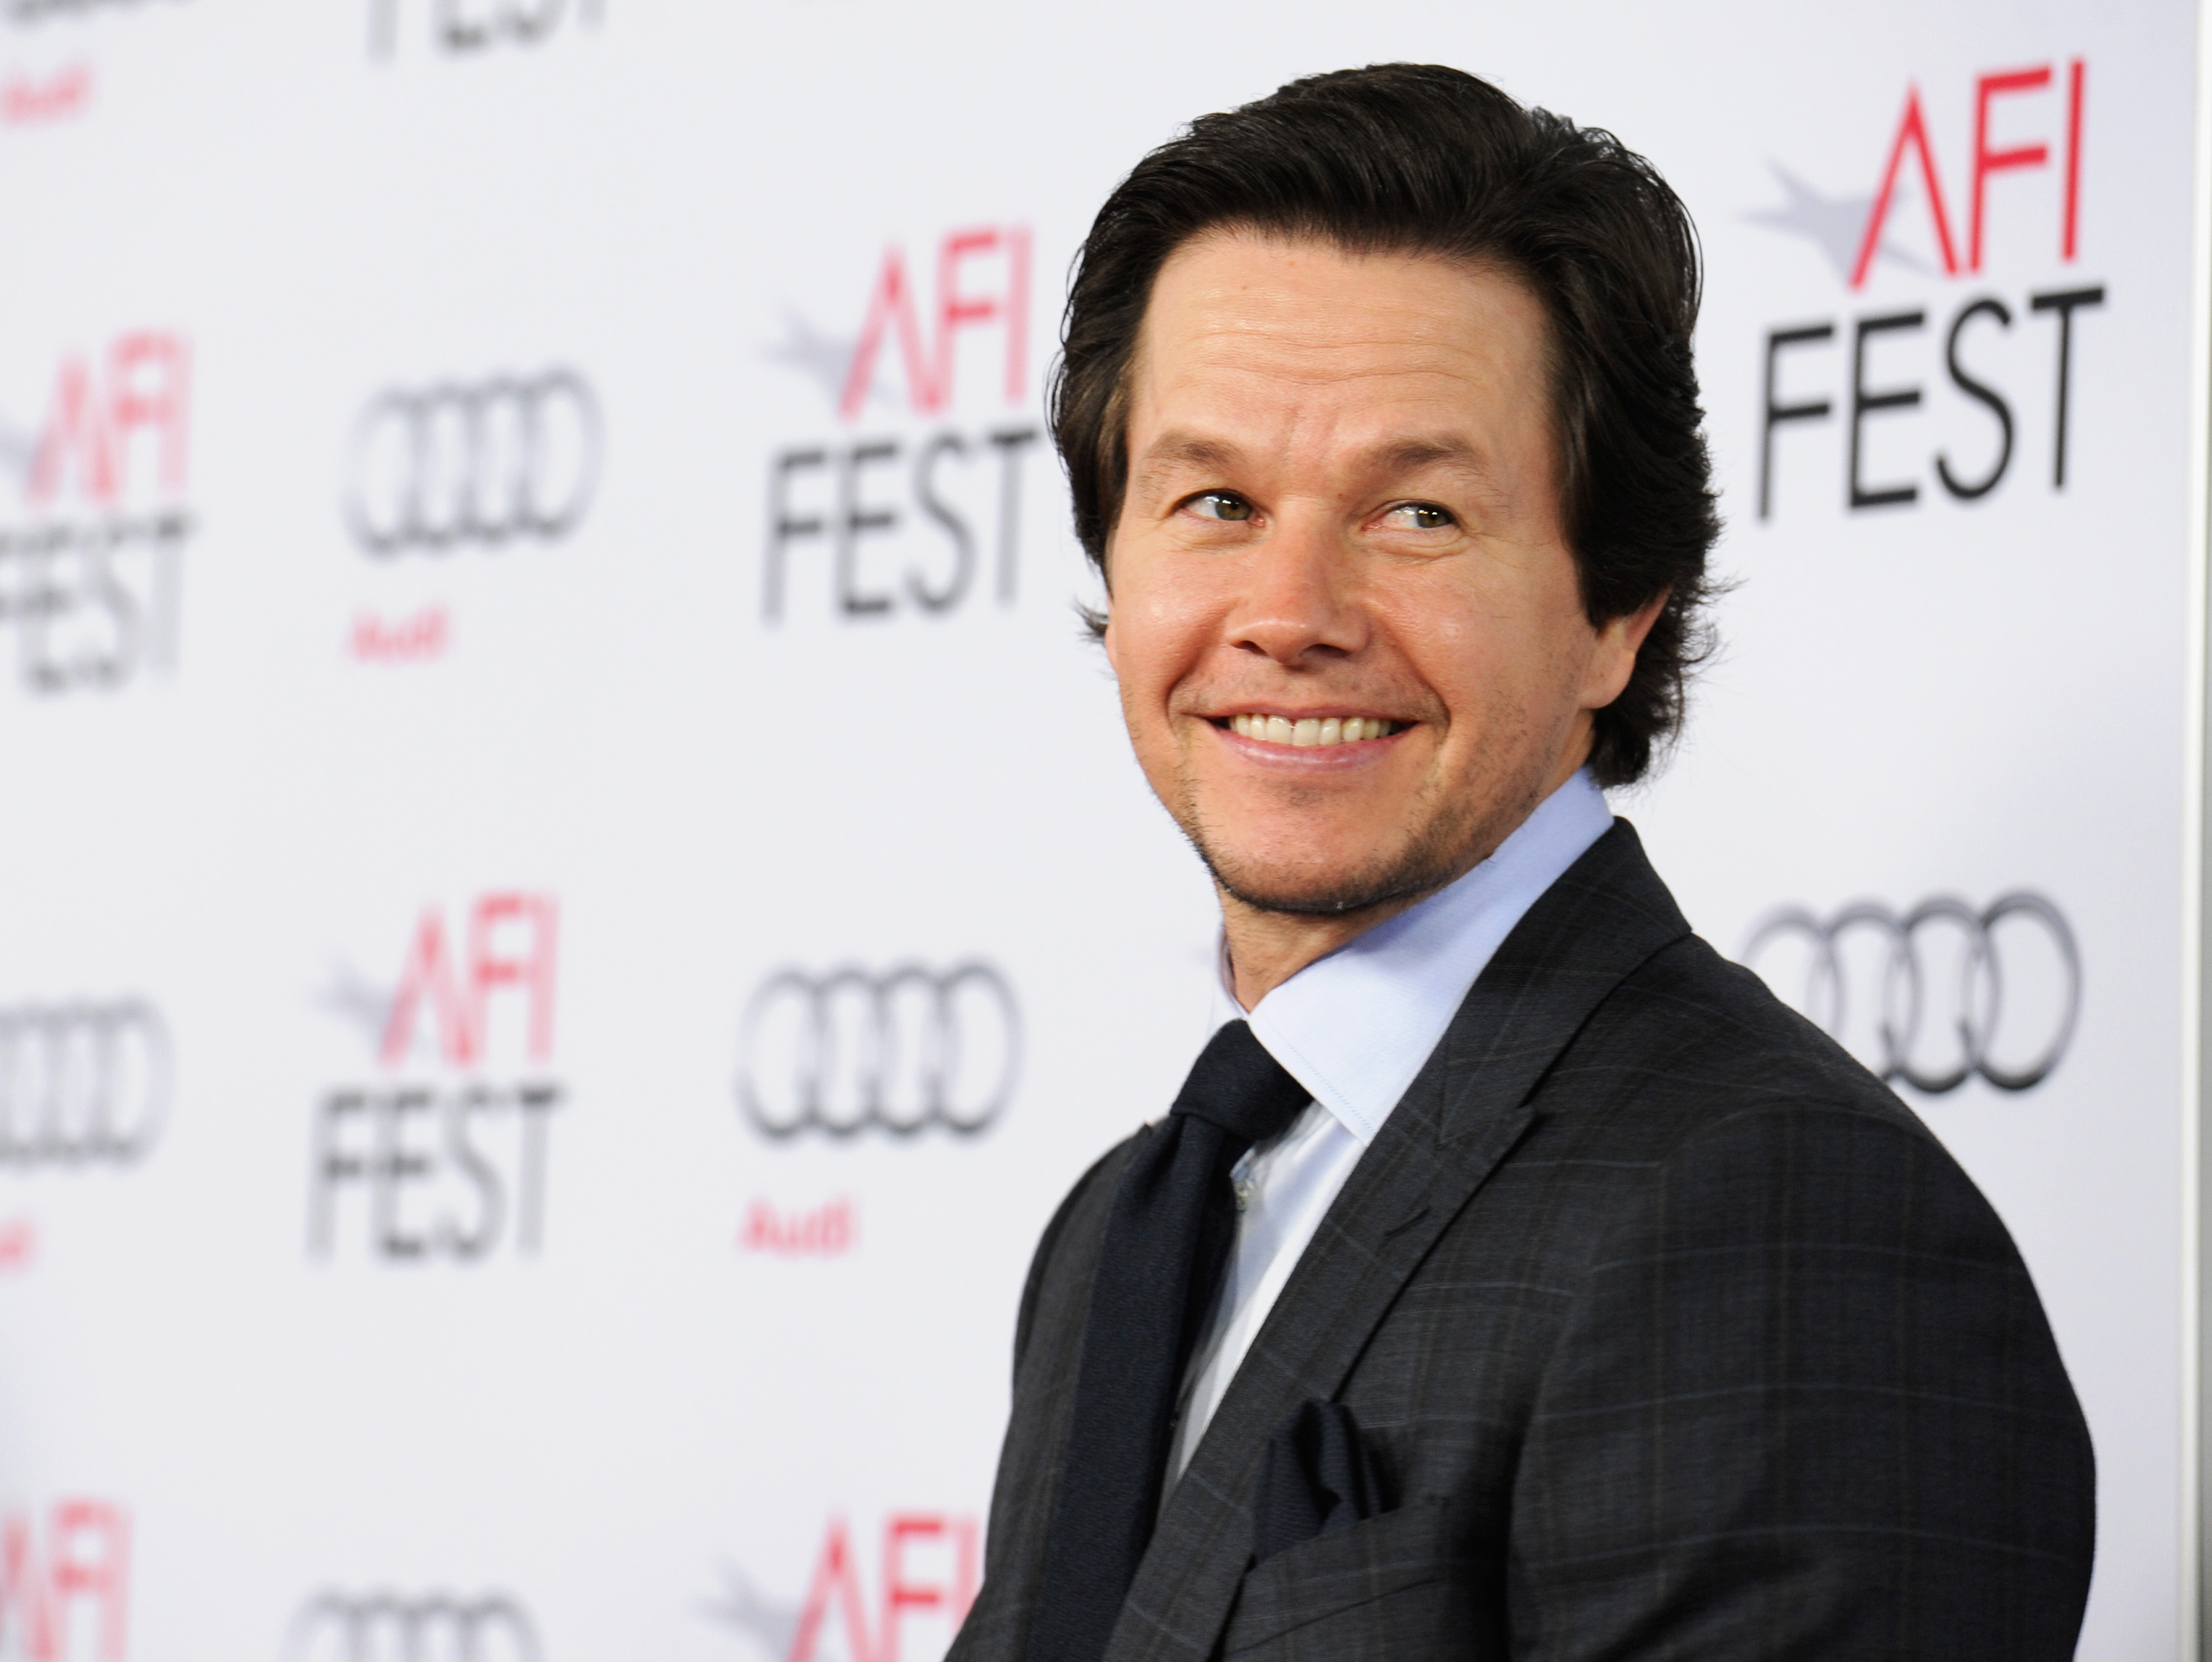 Actor Mark Wahlberg attends the screening of  The Gambler  during the AFI FEST 2014 presented by Audi at Dolby Theatre on Nov. 10, 2014 in Hollywood, Calif.